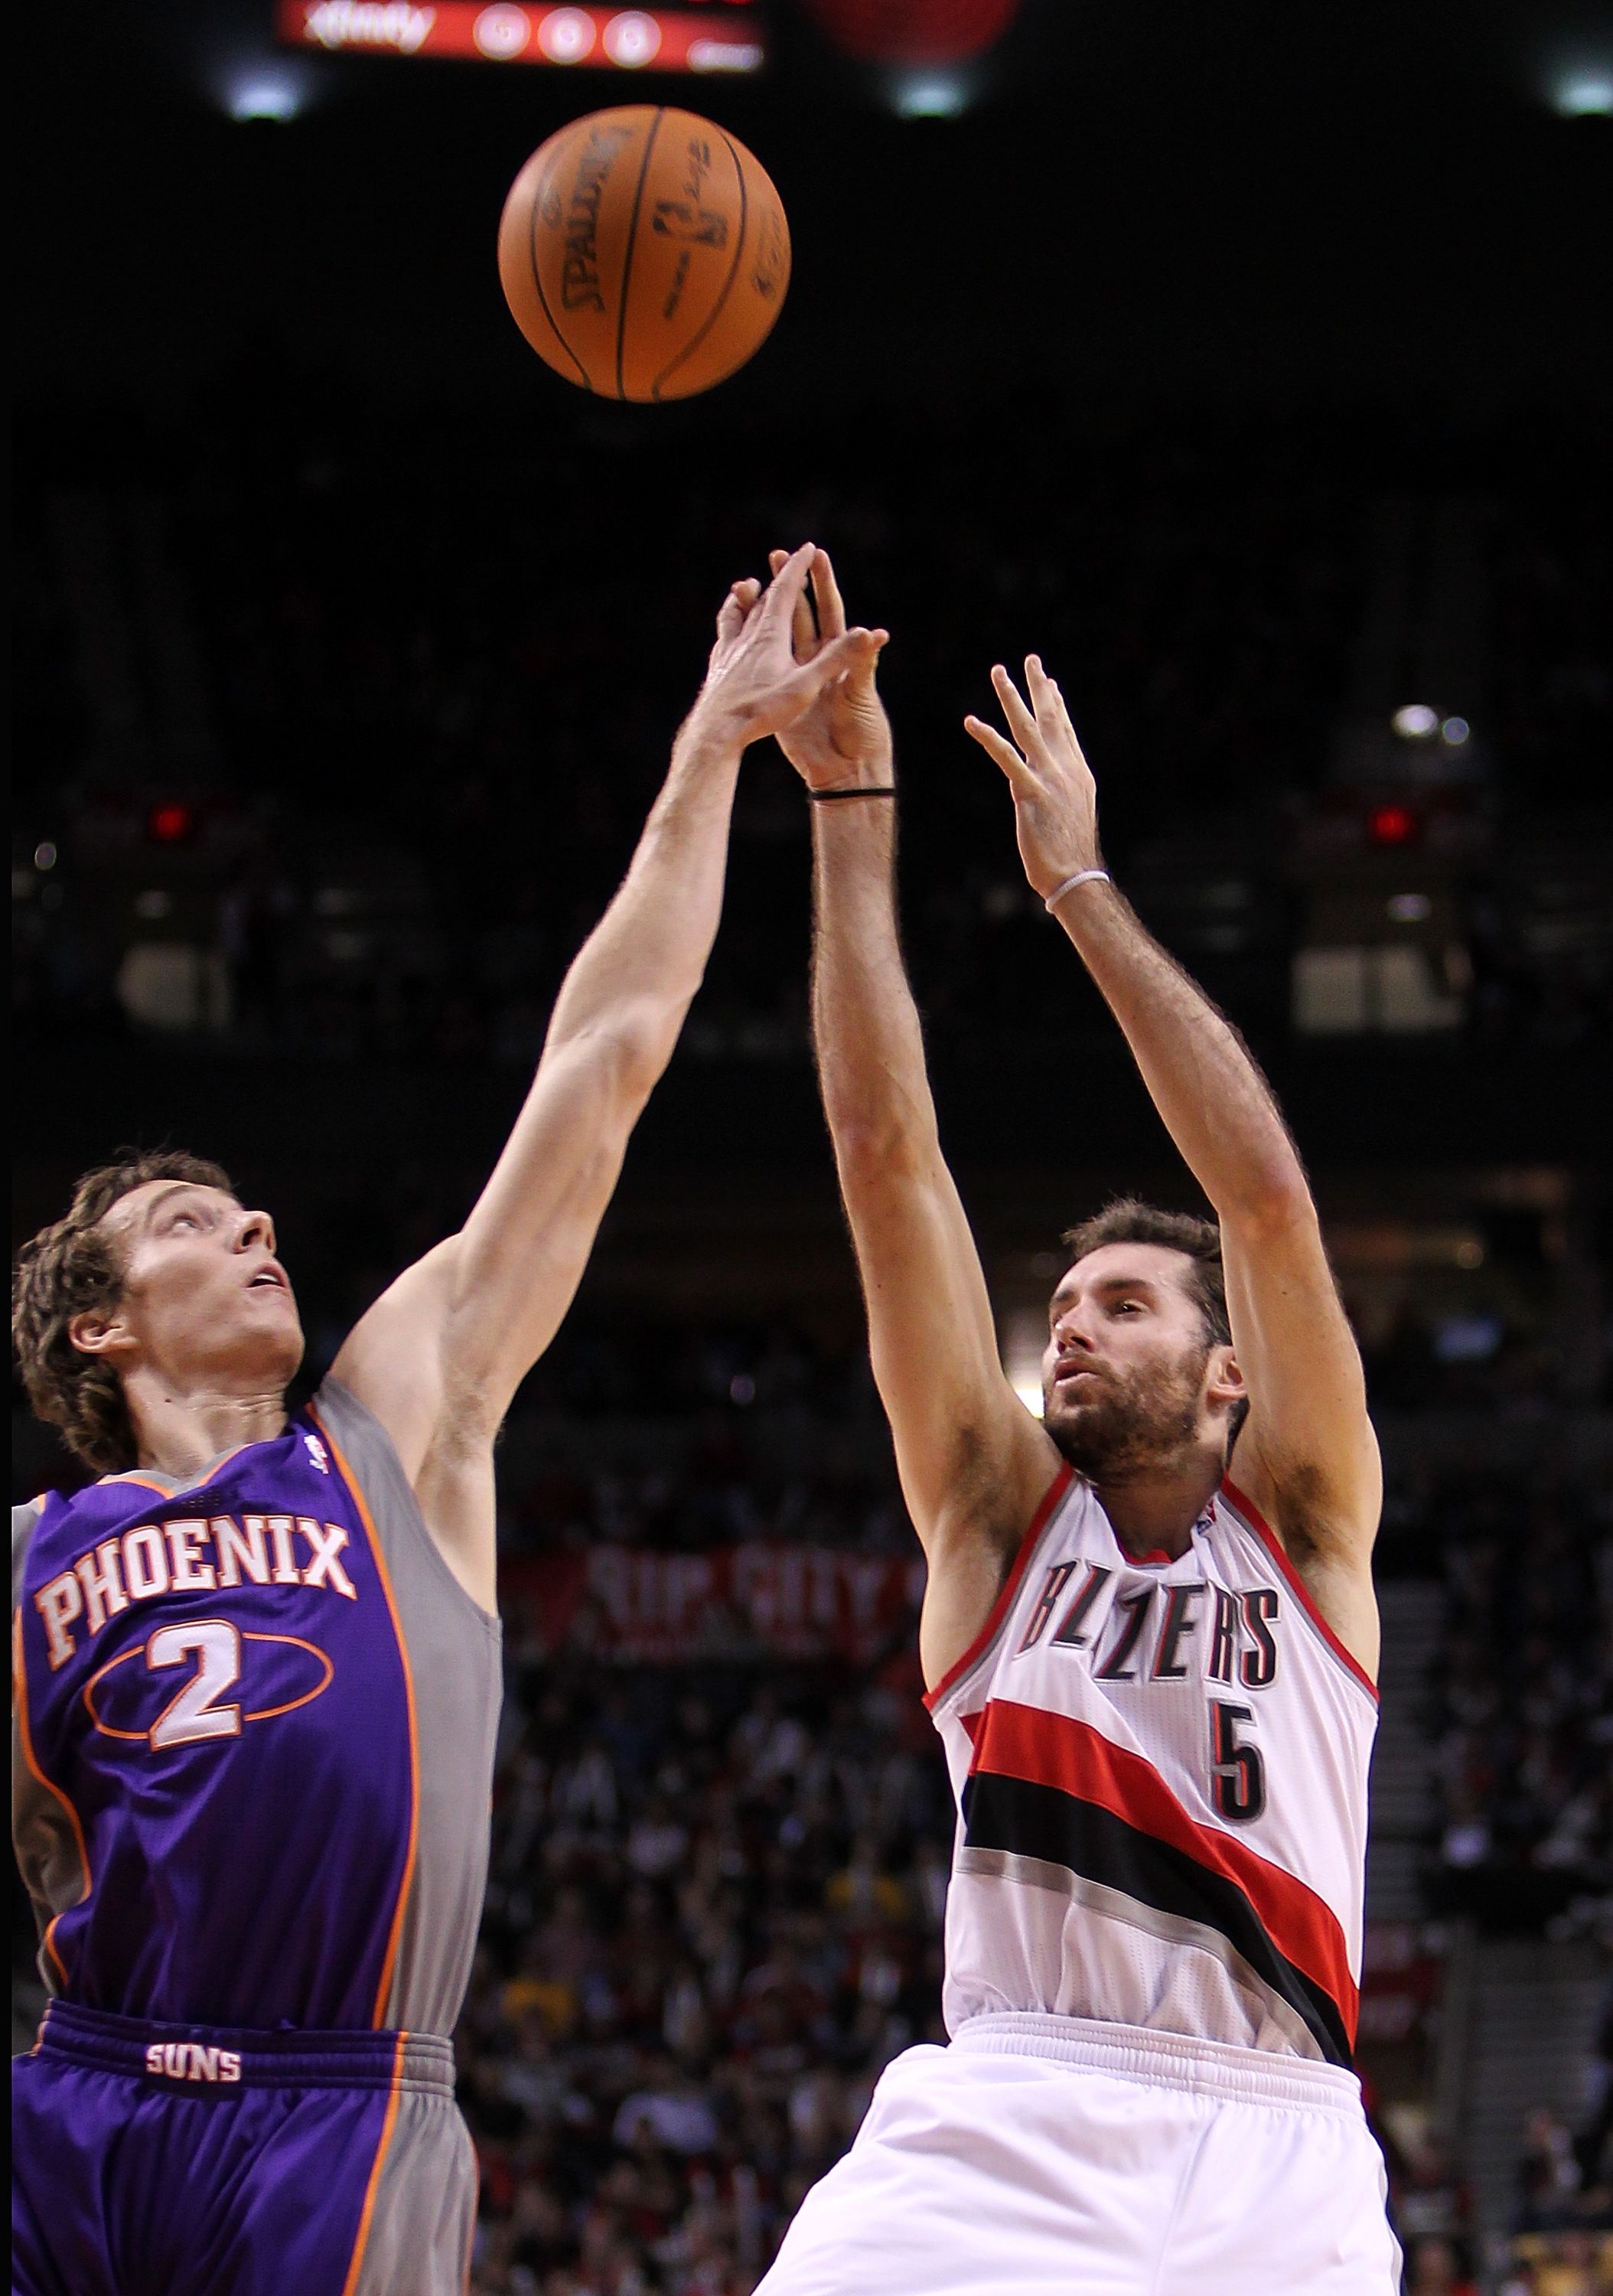 PORTLAND, OR - OCTOBER 26:  Rudy Fernandez #5 of the Portland Trail Blazers shoots the ball over Goran Dragic #2 of the Phoeninx Suns on October 26, 2010 at the Rose Garden in Portland, Oregon.  NOTE TO USER: User expressly acknowledges and agrees that, b